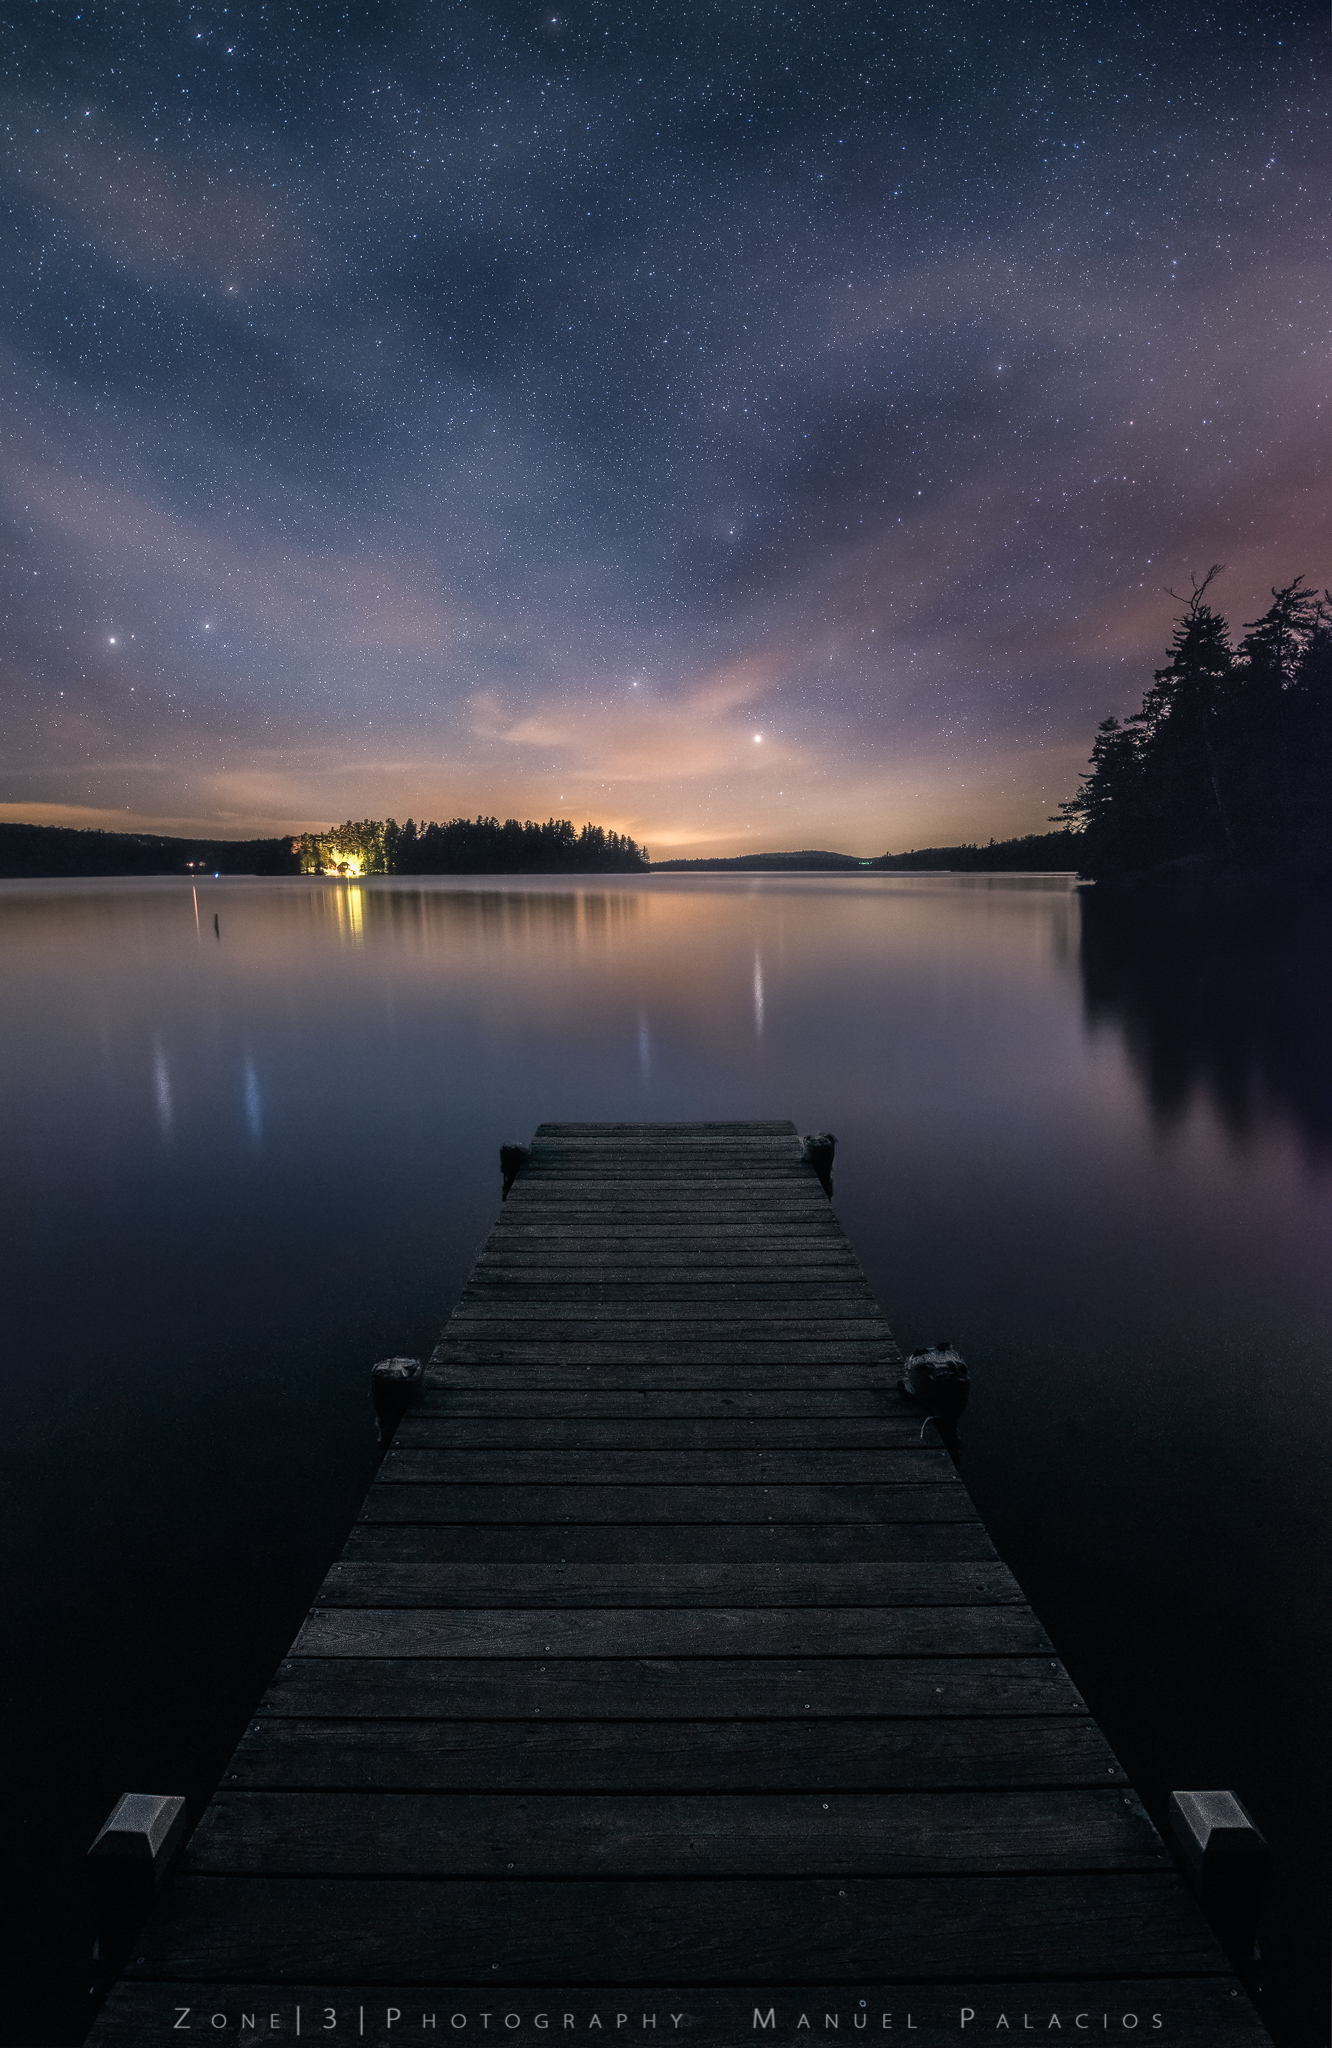 A Starry Night Over Saranac Lake